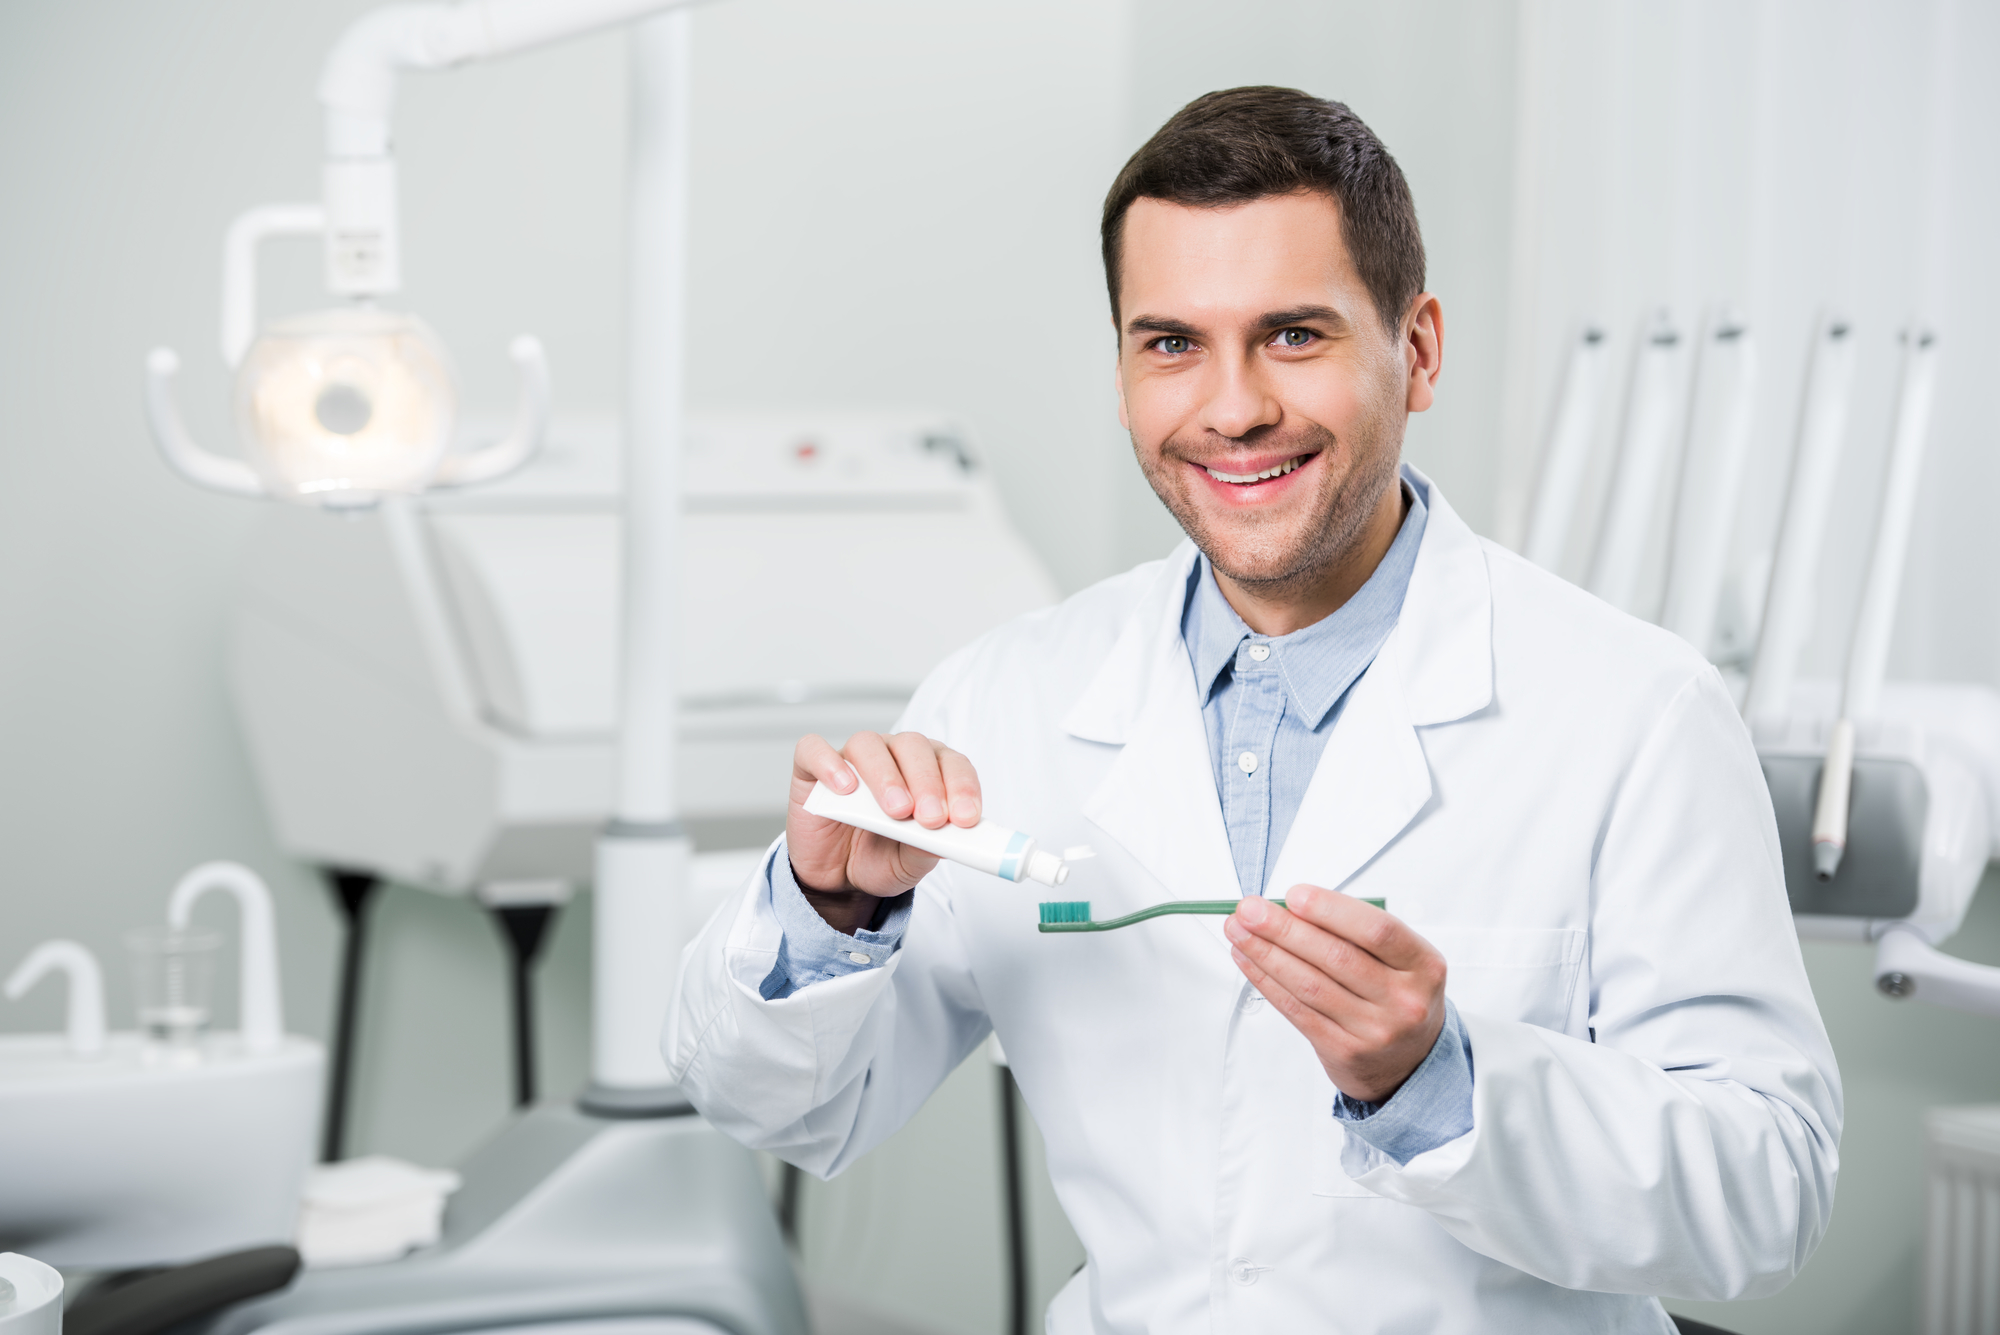 who offers the best tooth extractions plantation?